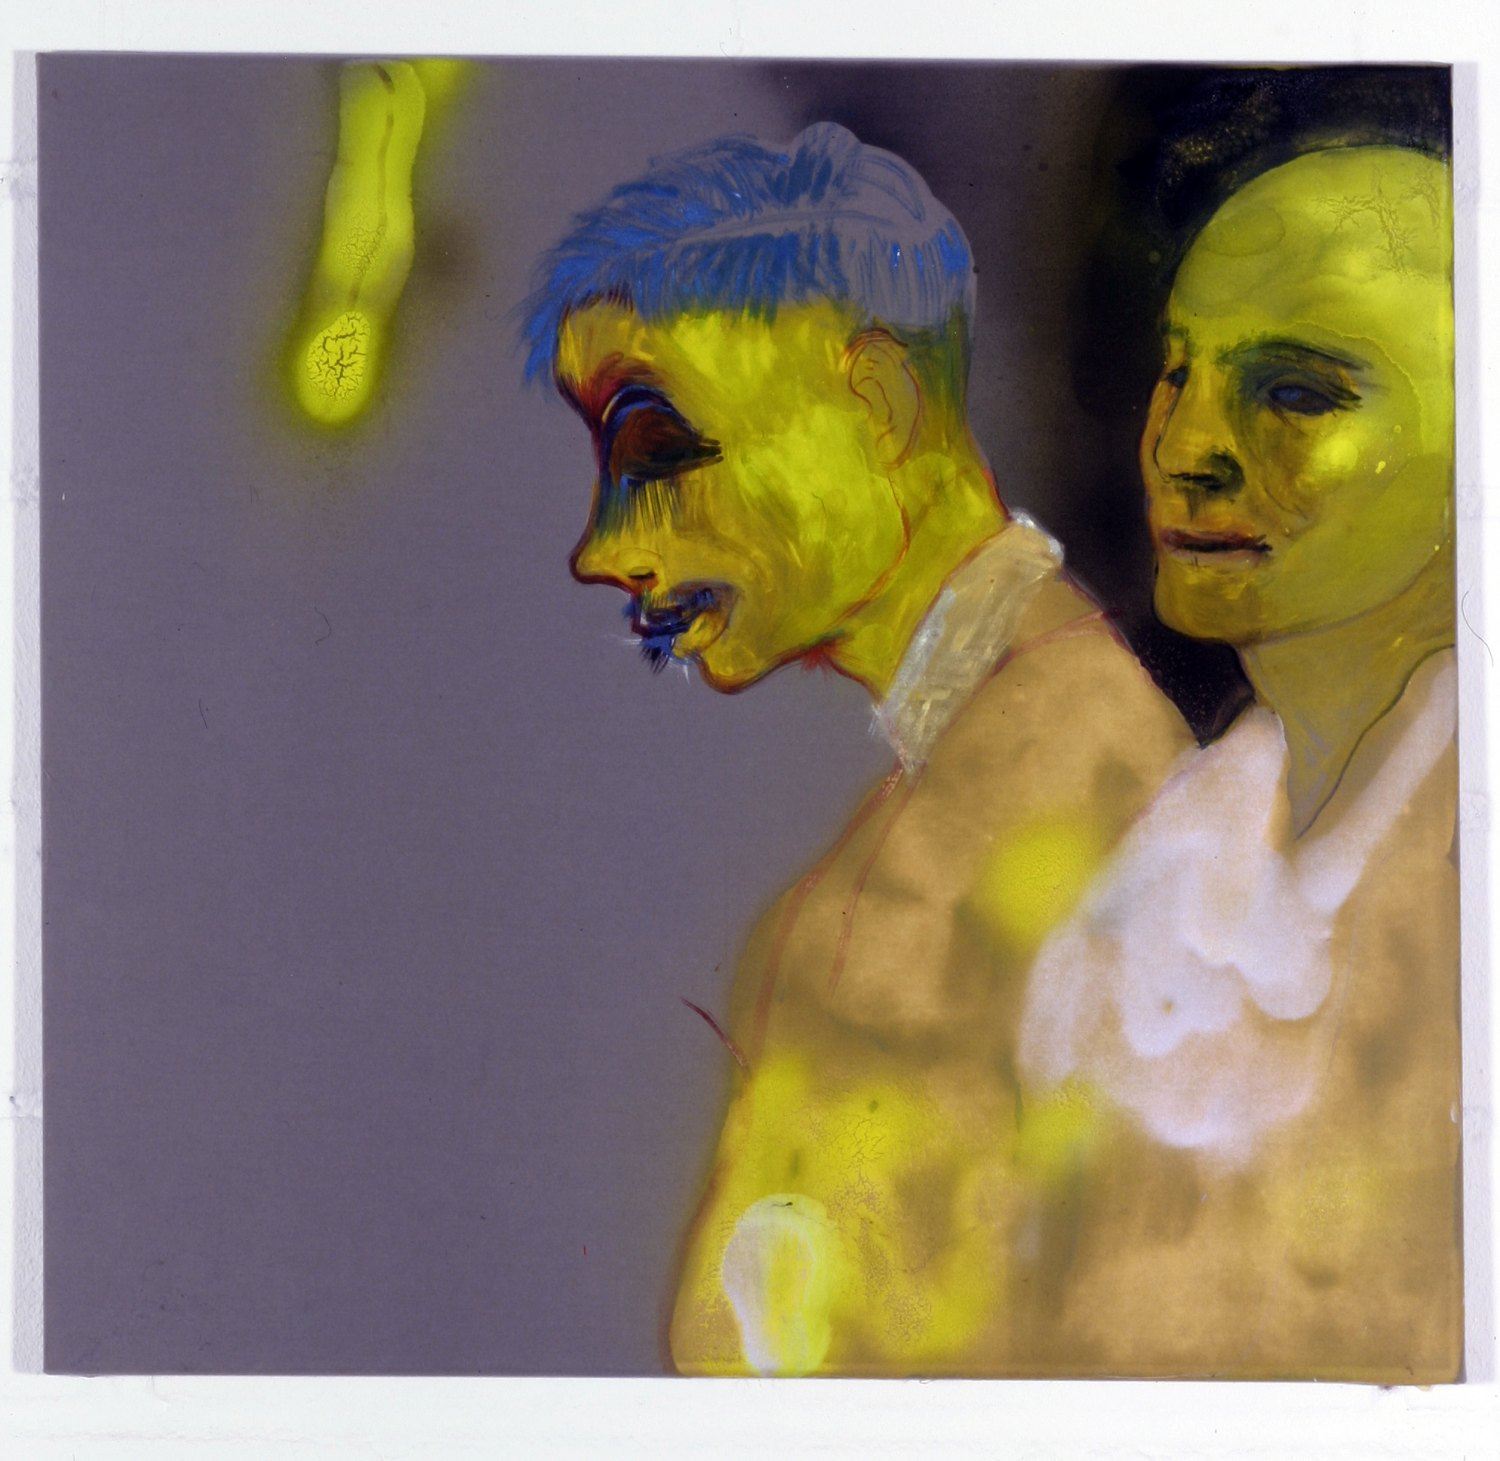 Kai Althoff Untitled, 2004 Oil and spray paint on fabric, 53 × 57 cm